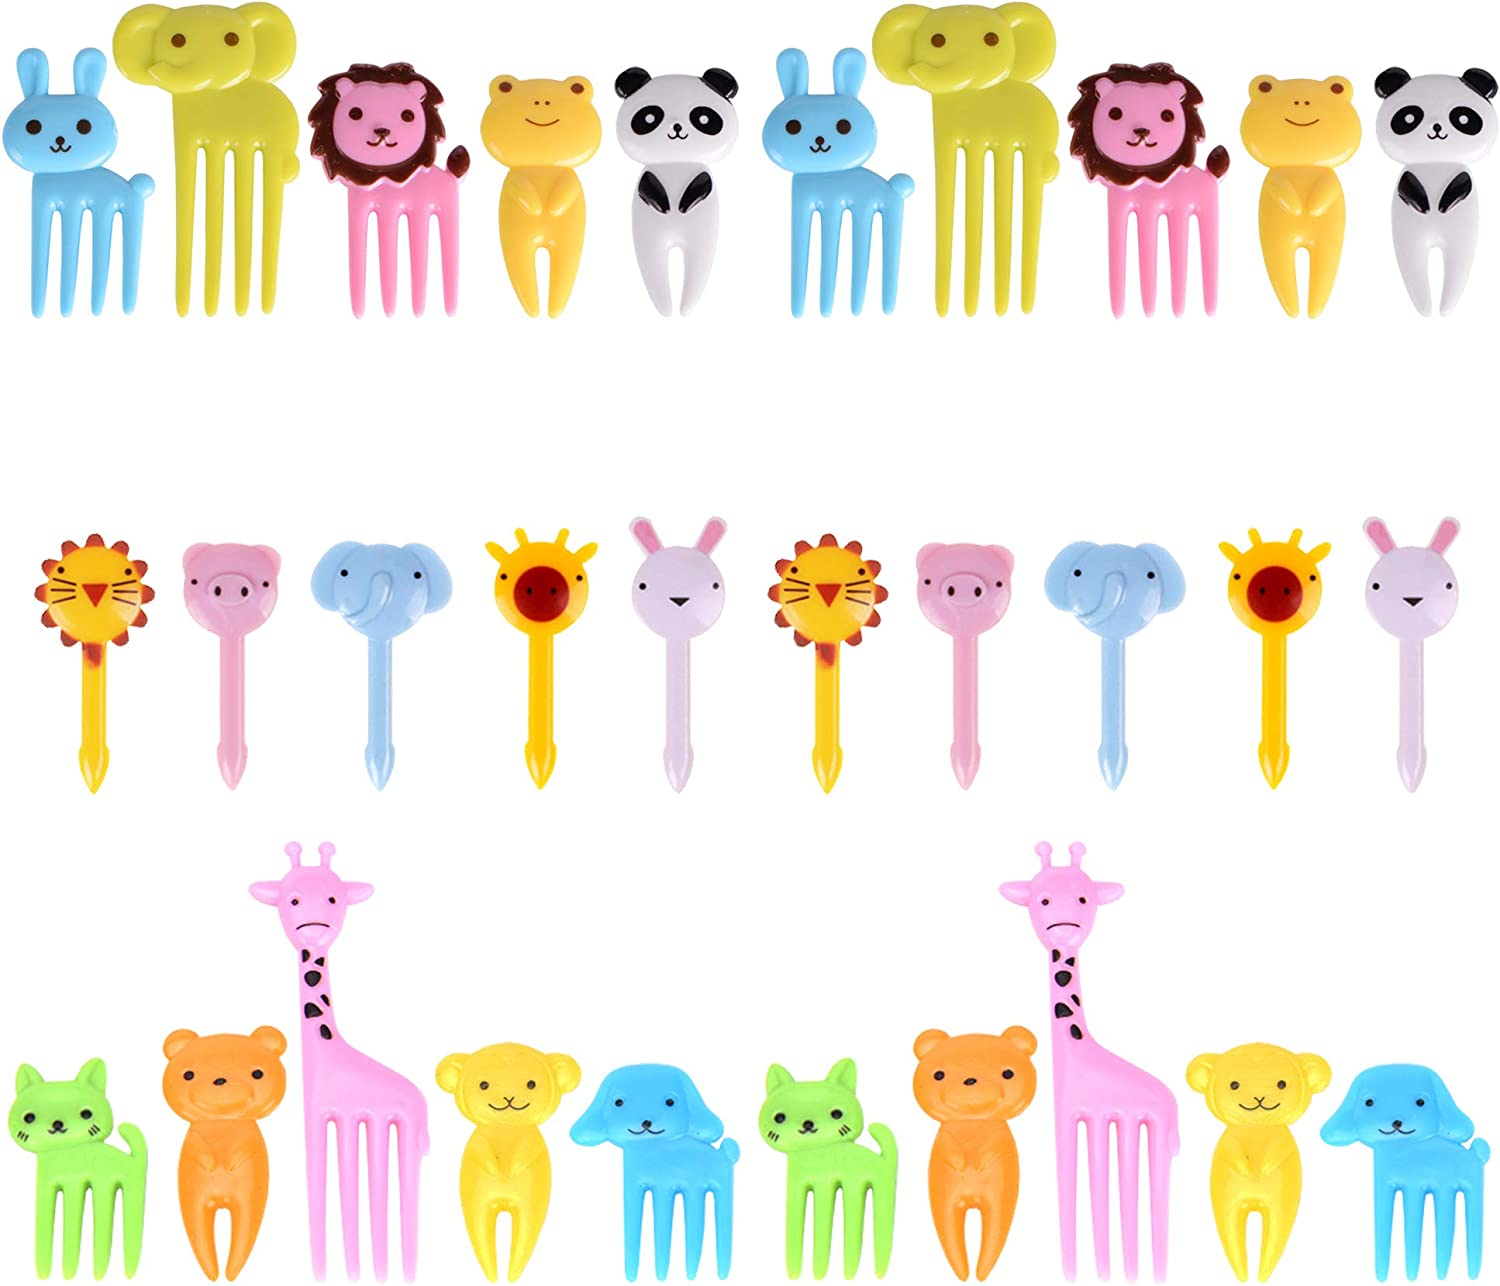 GO Fresh Food Picks for Kids, 30 Pieces Animal Bento Deco Set, Mini Bento Decorations Set for Baby Showers and Kids Parties, Mini Cartoon Toothpick, Bento Lunch Deco